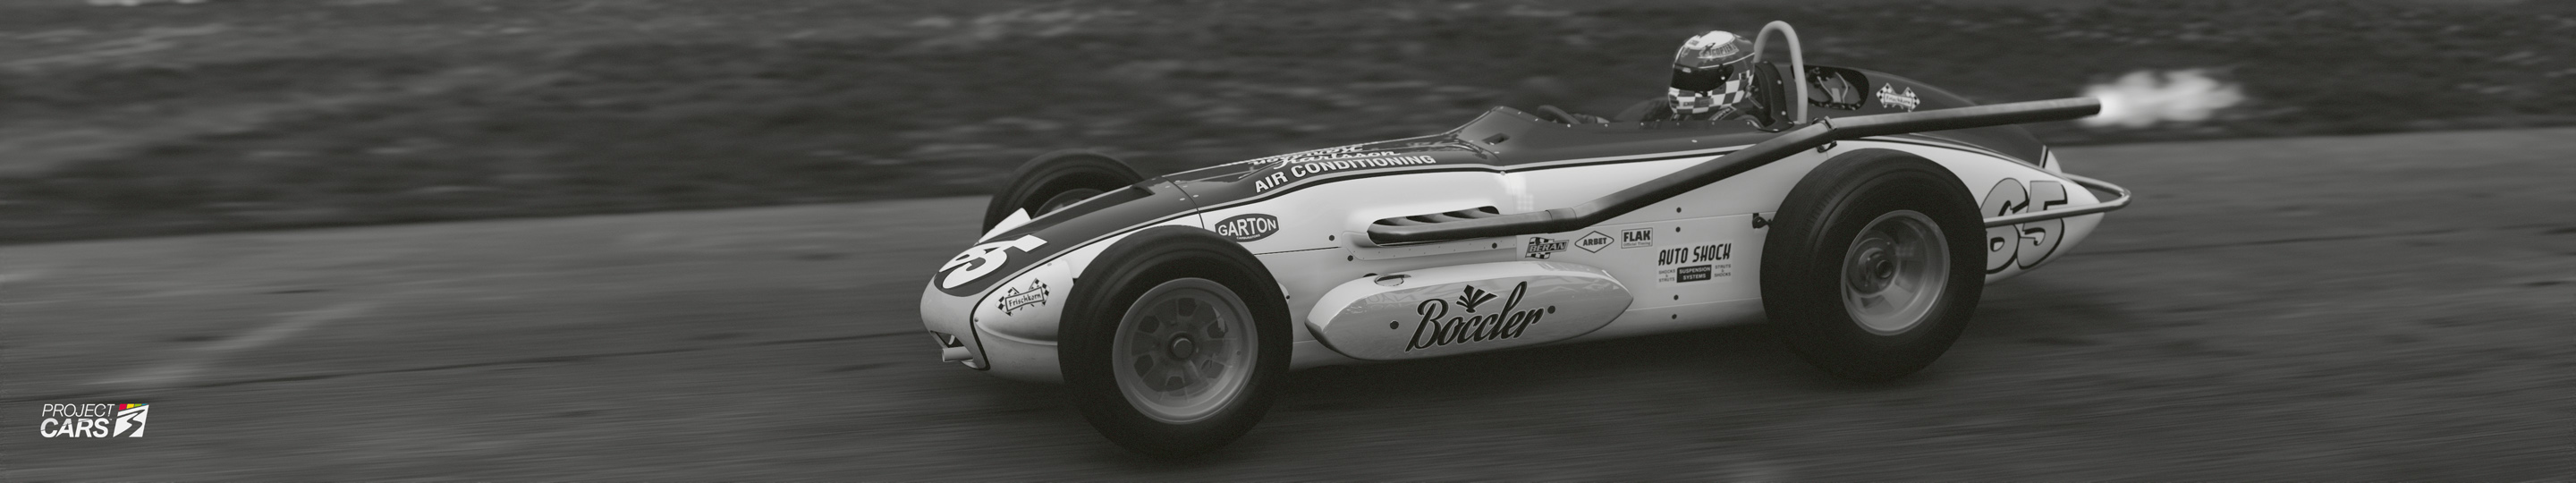 4 PROJECT CARS 3 WATSON ROADSTER at MONZA HISTORIC copy.jpg